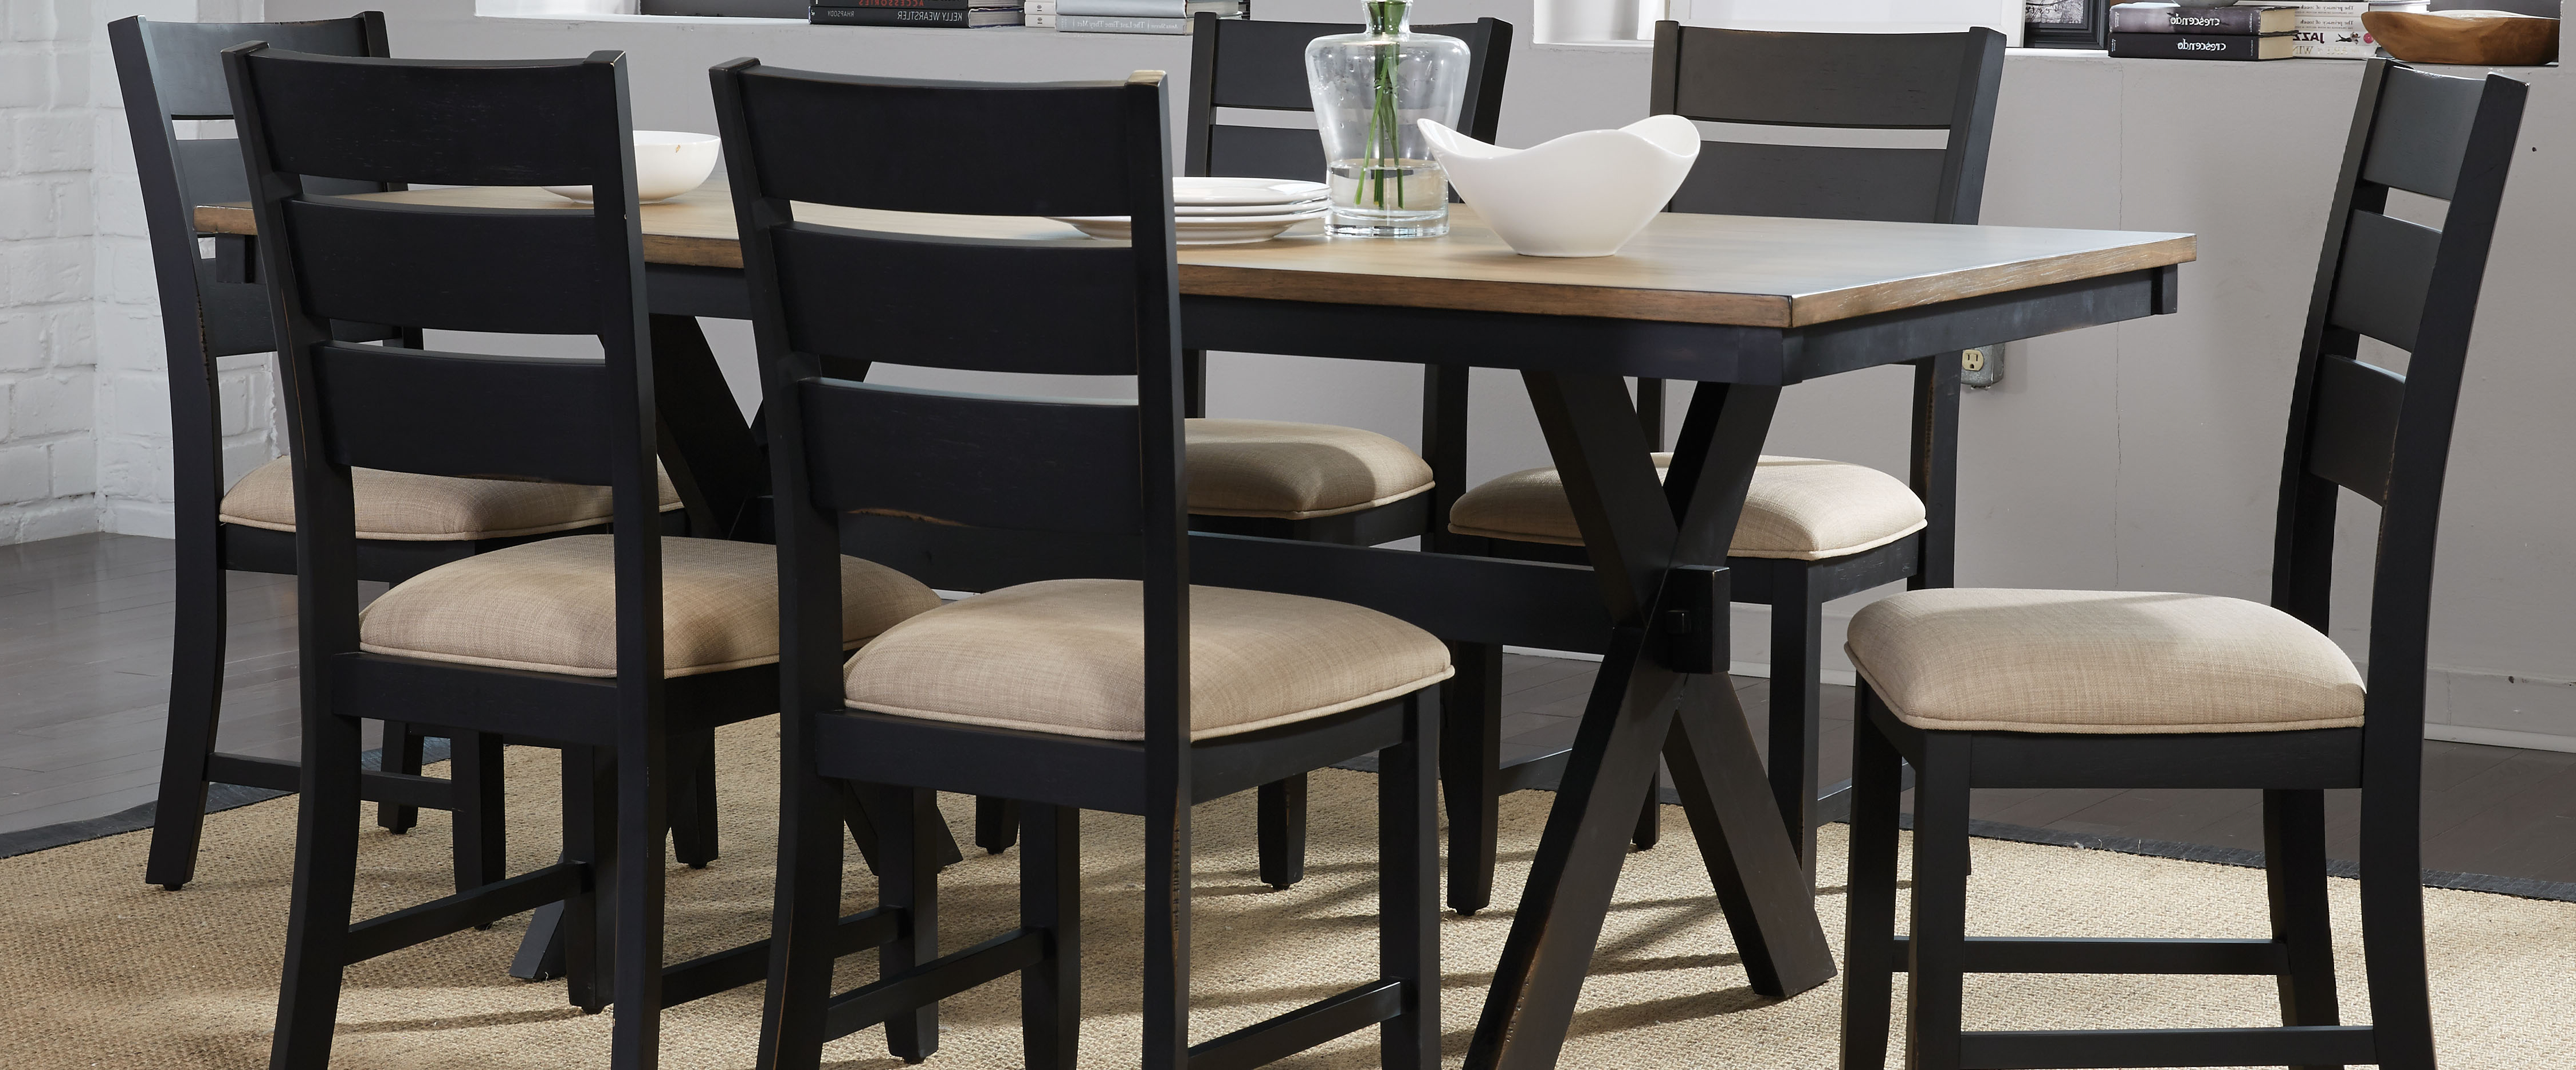 Cincinnati 3 Piece Dining Sets Inside Newest Dinette Sets – Sims Furniture Company (View 6 of 25)